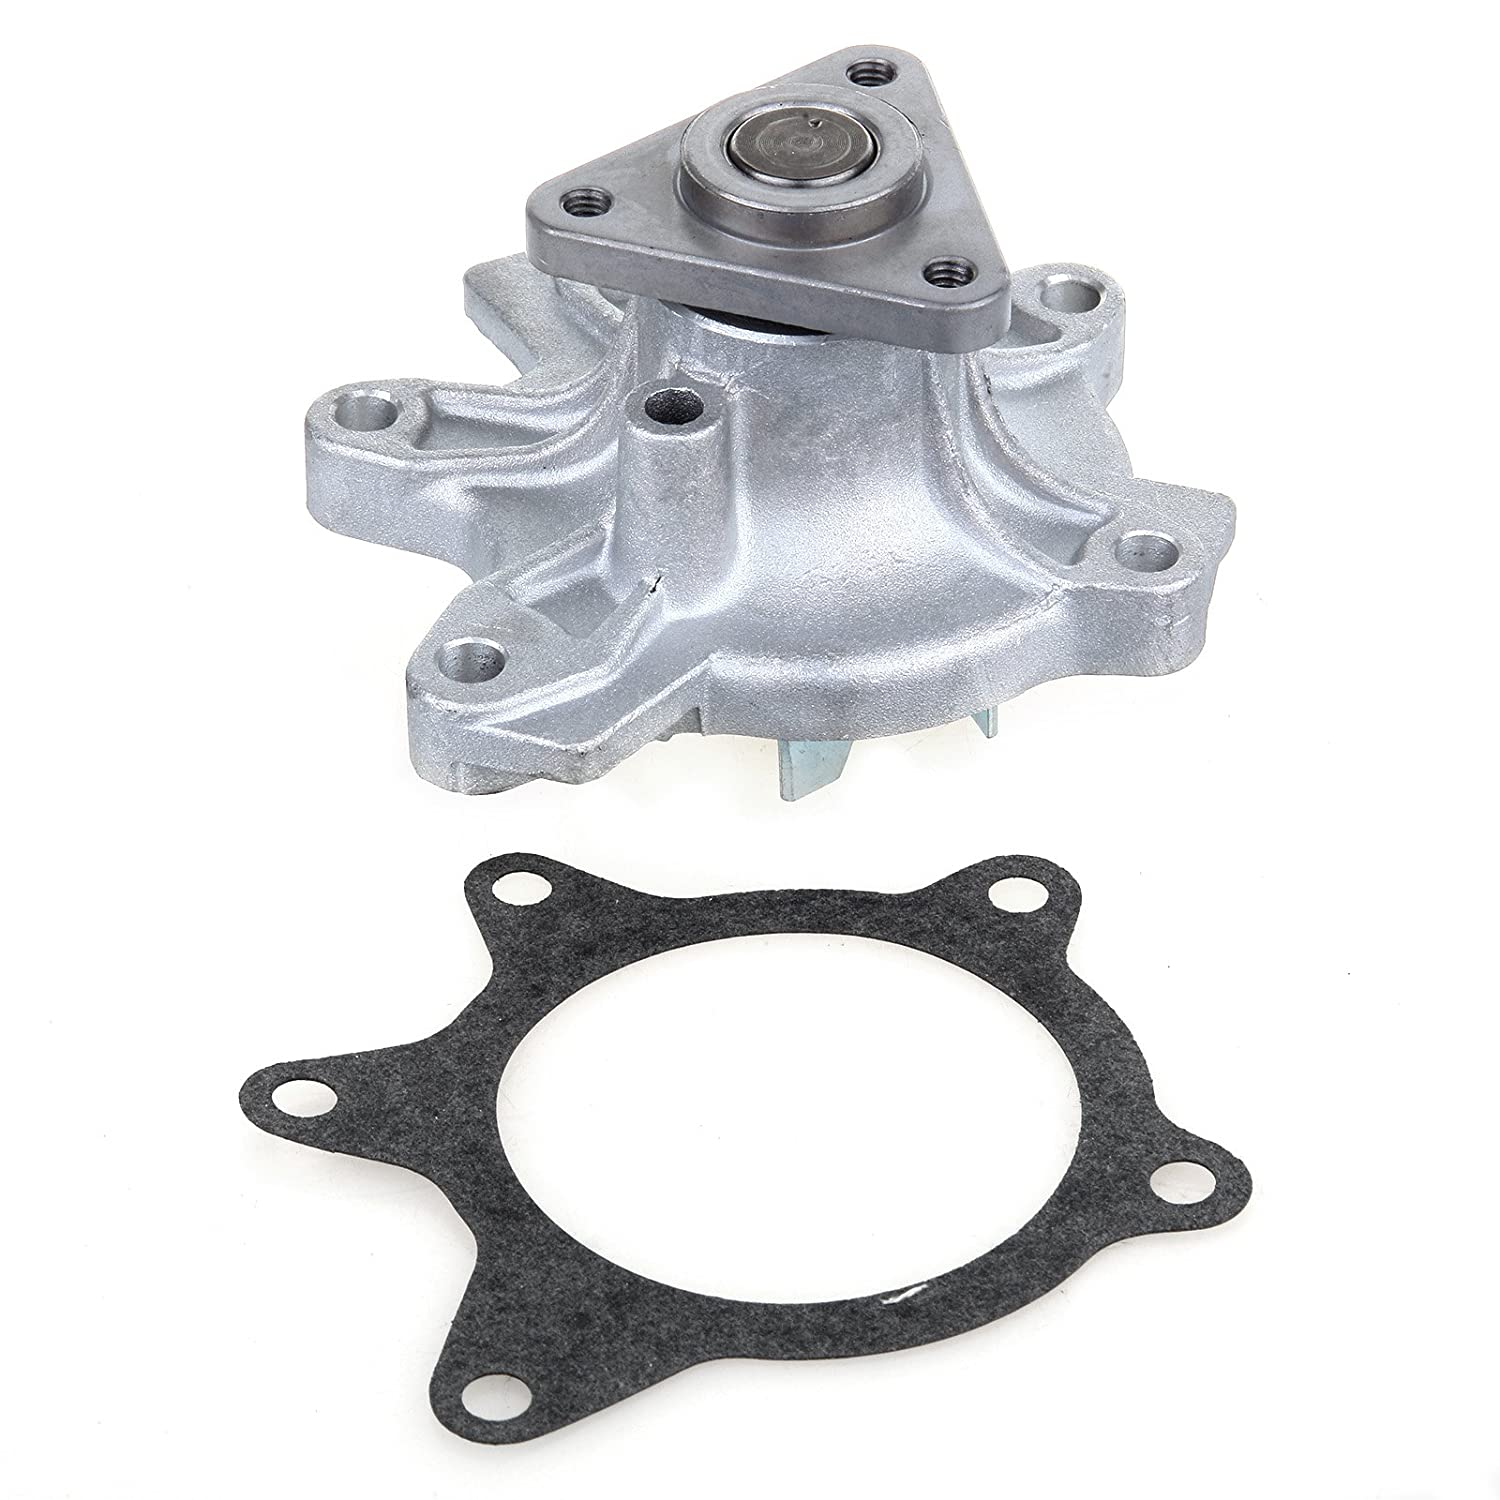 CCIYU Timing Chain WP2045 Water Pump fits for 2004 2005 2006 Scion xA Replacement Timing Chain Kit for 2004 2005 2006 2007 2008 2009 Toyota Prius Camshaft Chain for 2010 2011 2012 Toyota Yaris